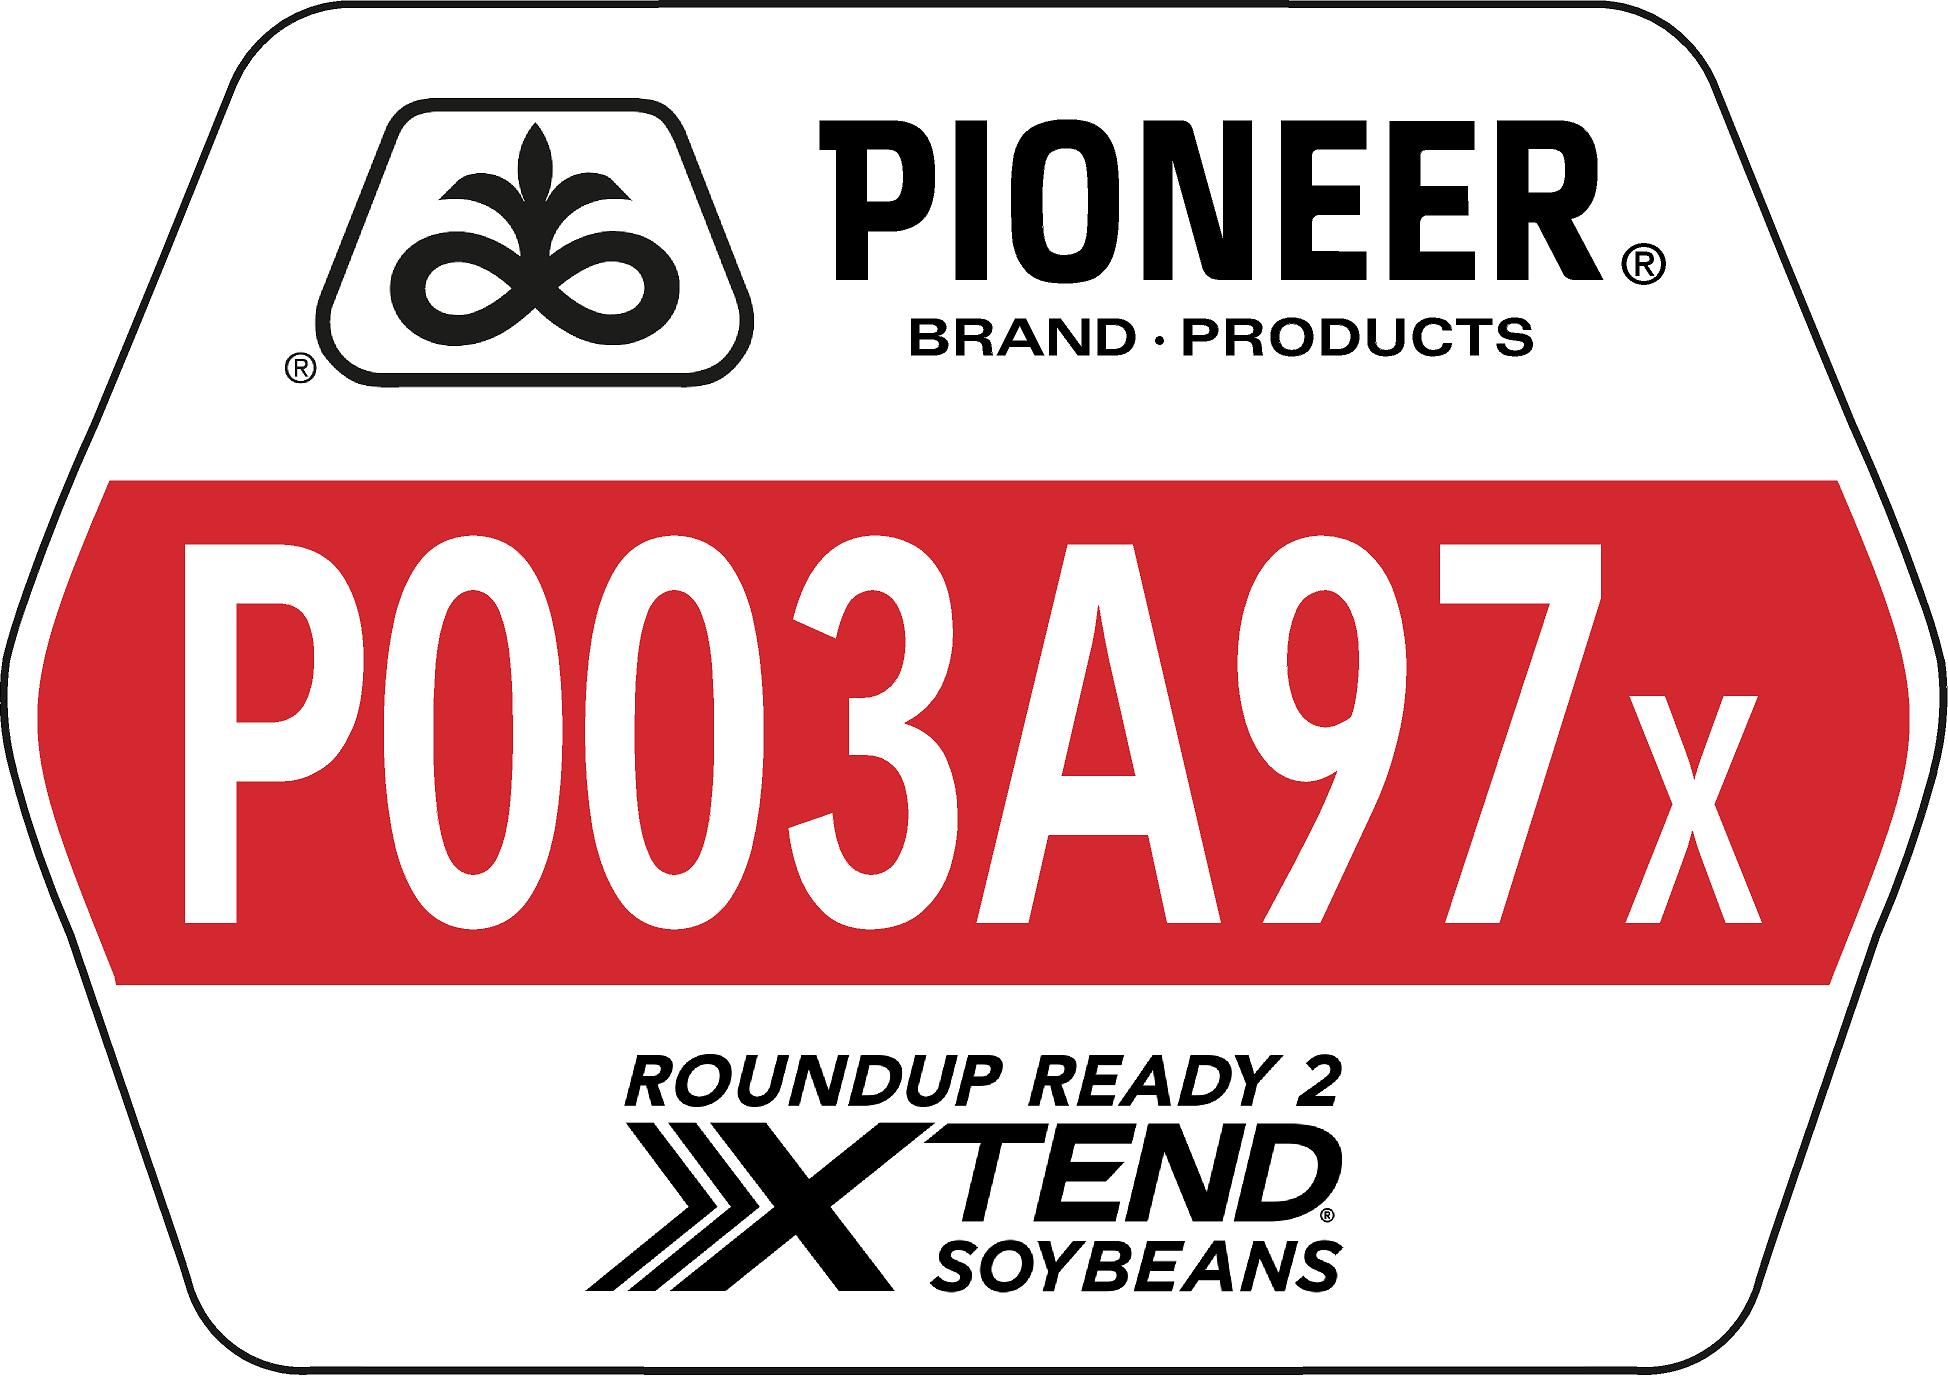 Field Sign - Soybeans - P003A97X